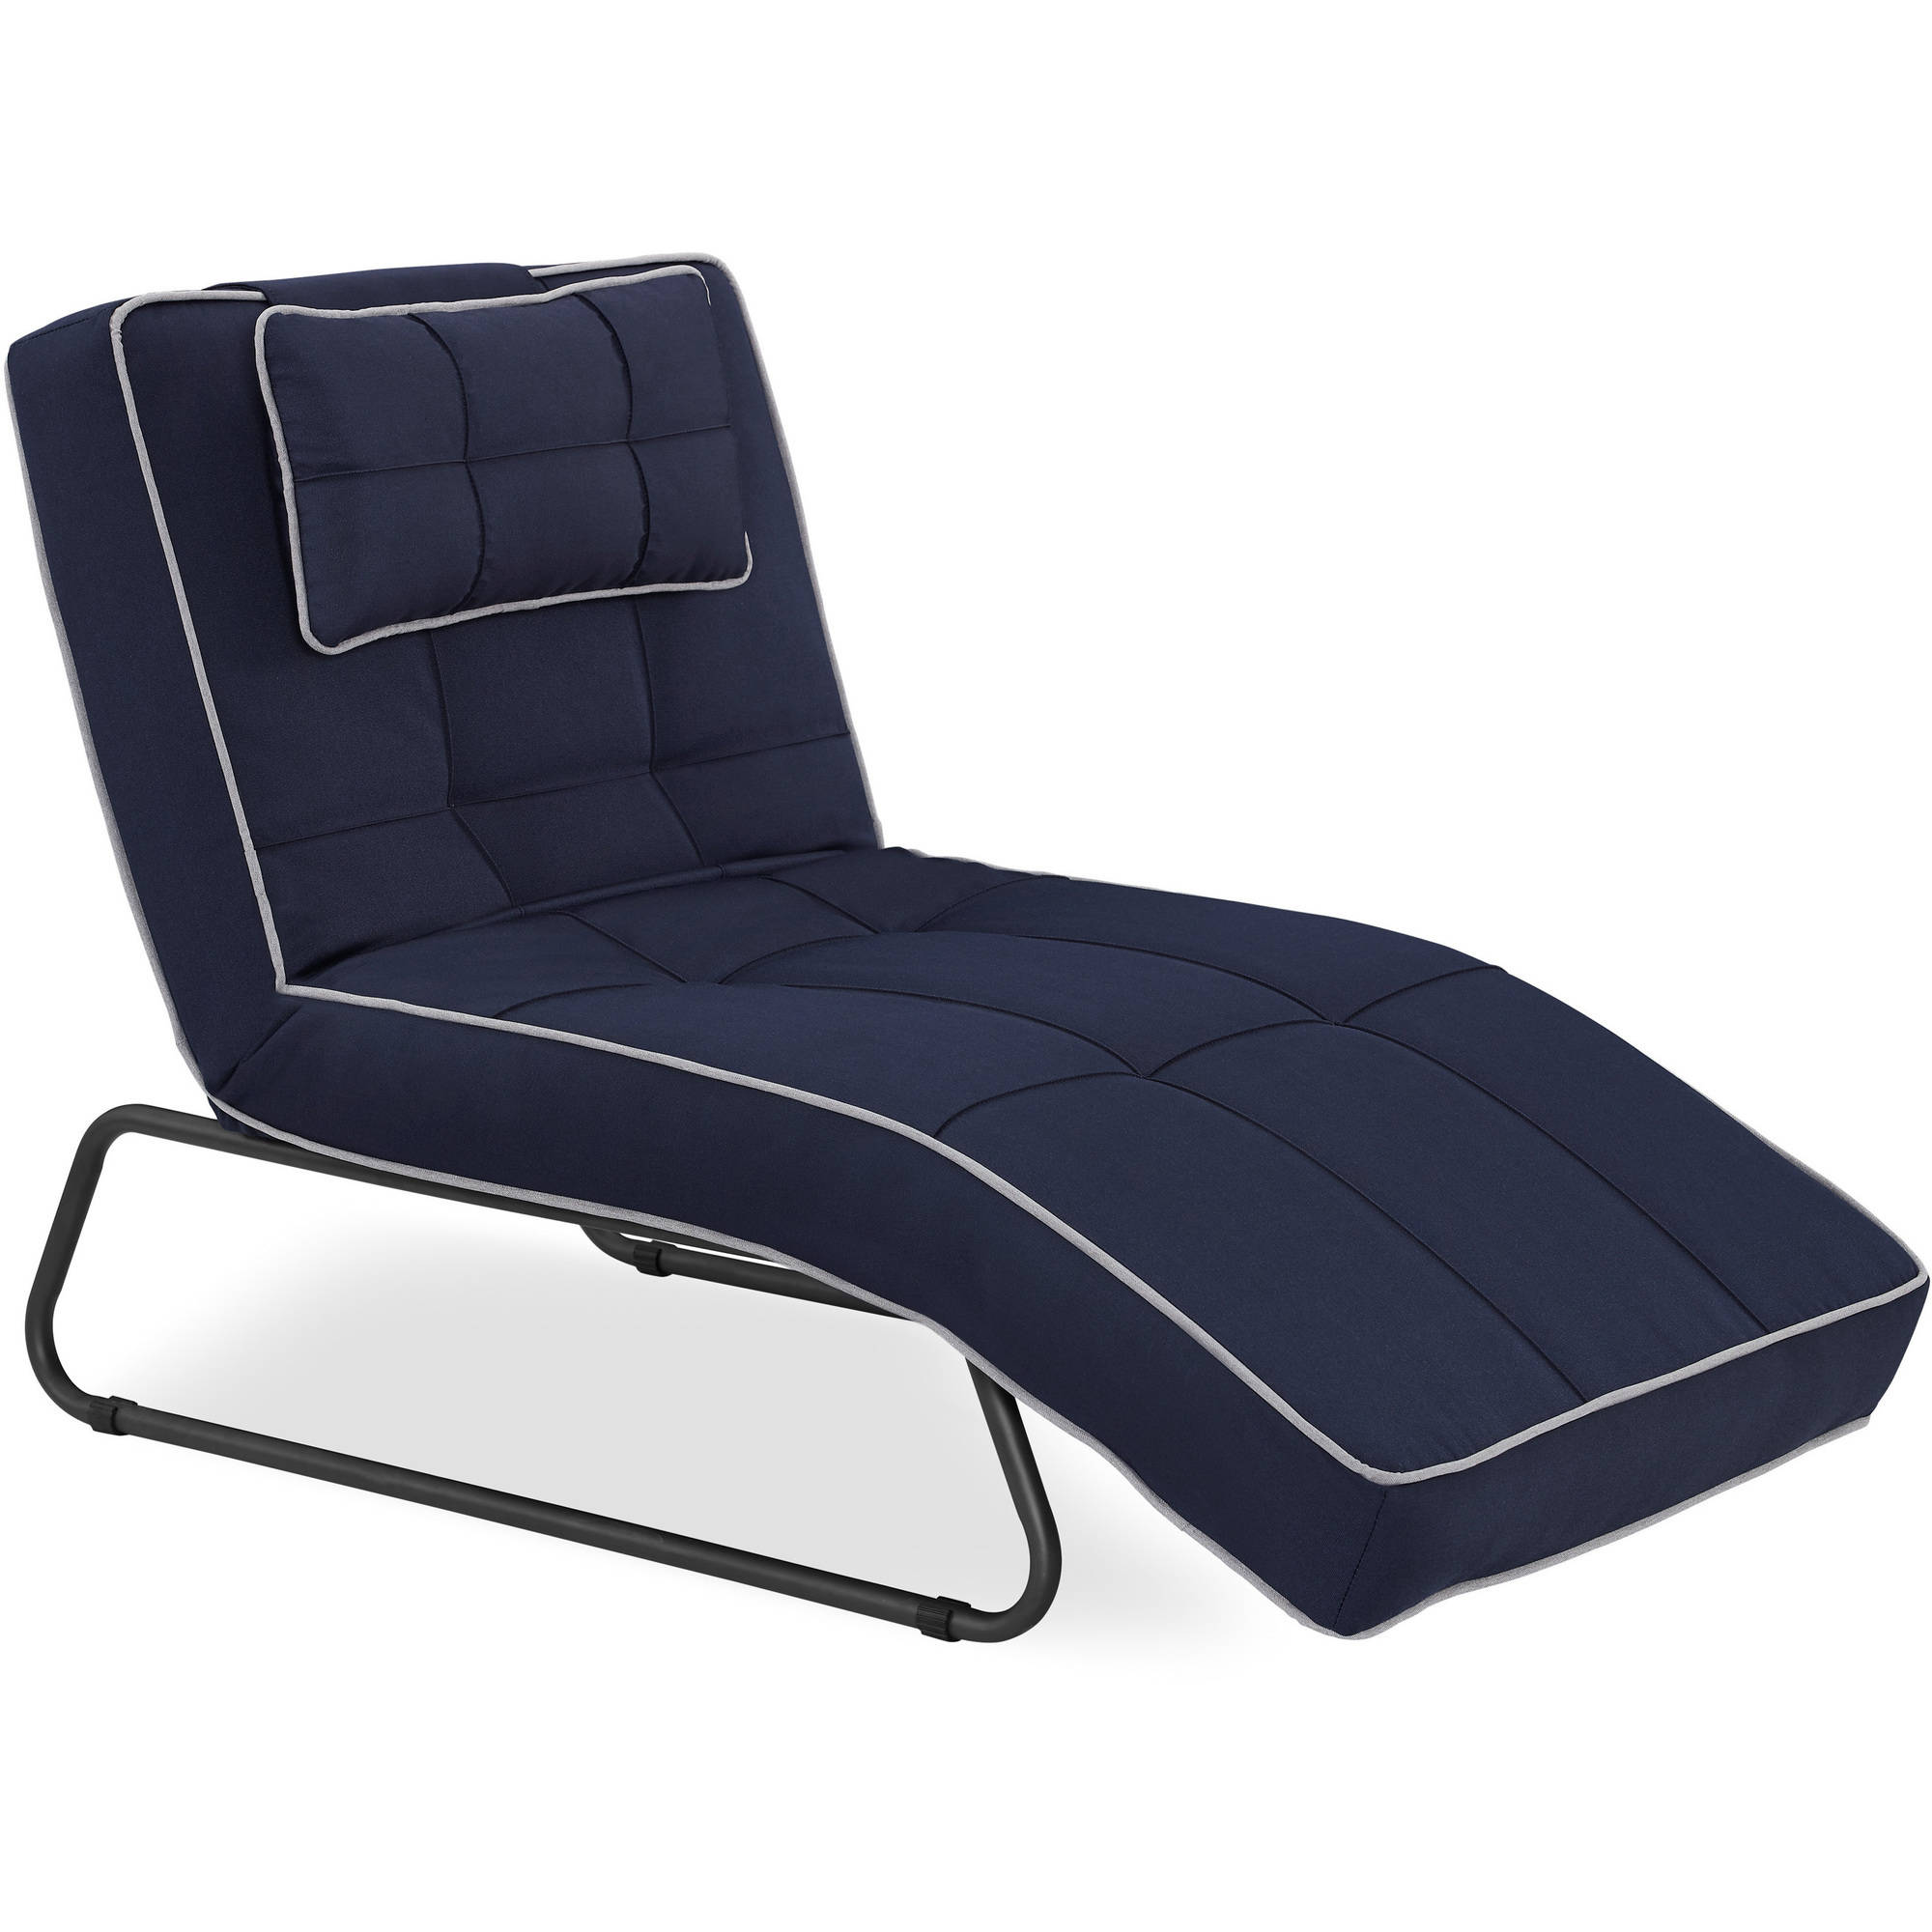 Relax-A-Lounger Ravon Pool and Deck Convertible Chaise, Multiple Colors